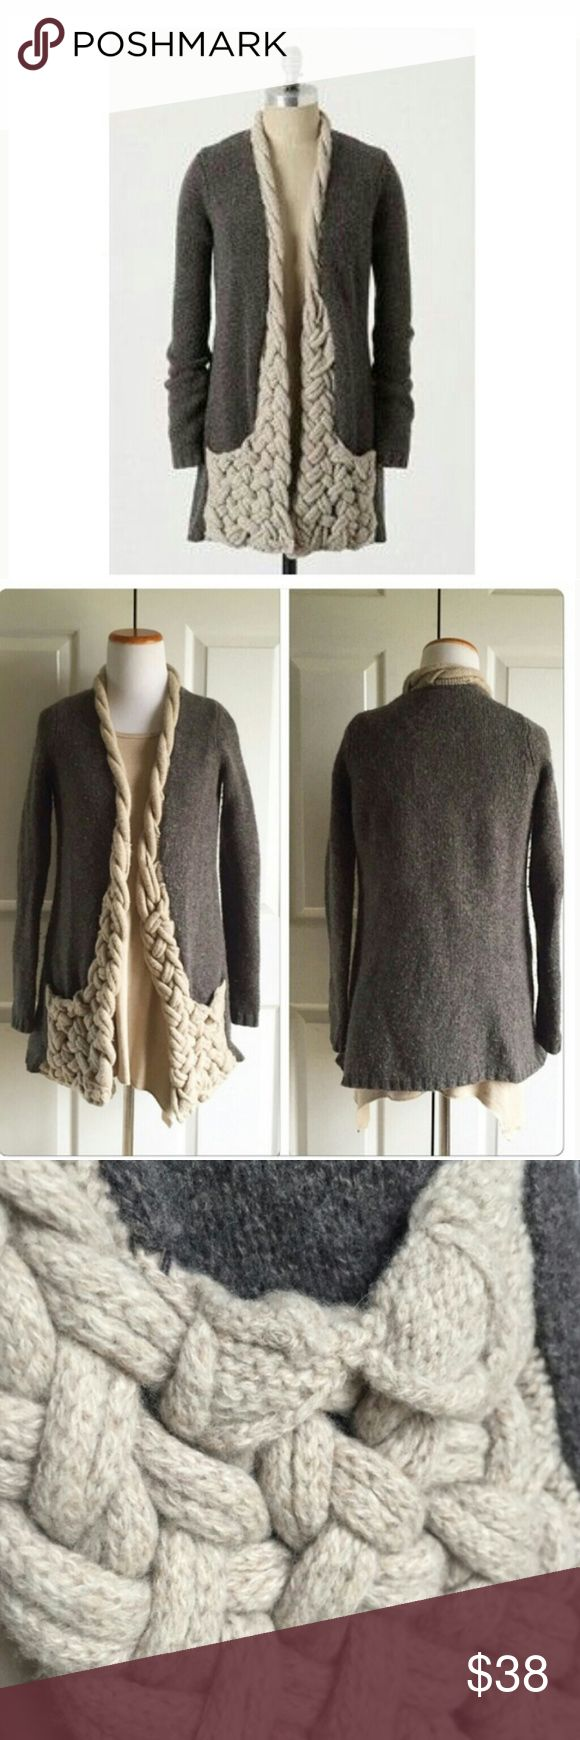 BF SALE 🎁 Anthropology Sparrow Braided Cardigan Amazing sweater by Sparrow! Has adorable adorable braiding detail, pockets, and is 100% lambs wool! Rare piece in great condition  ON SALE FOR BLACK FRIDAY Anthropologie Sweaters Cardigans